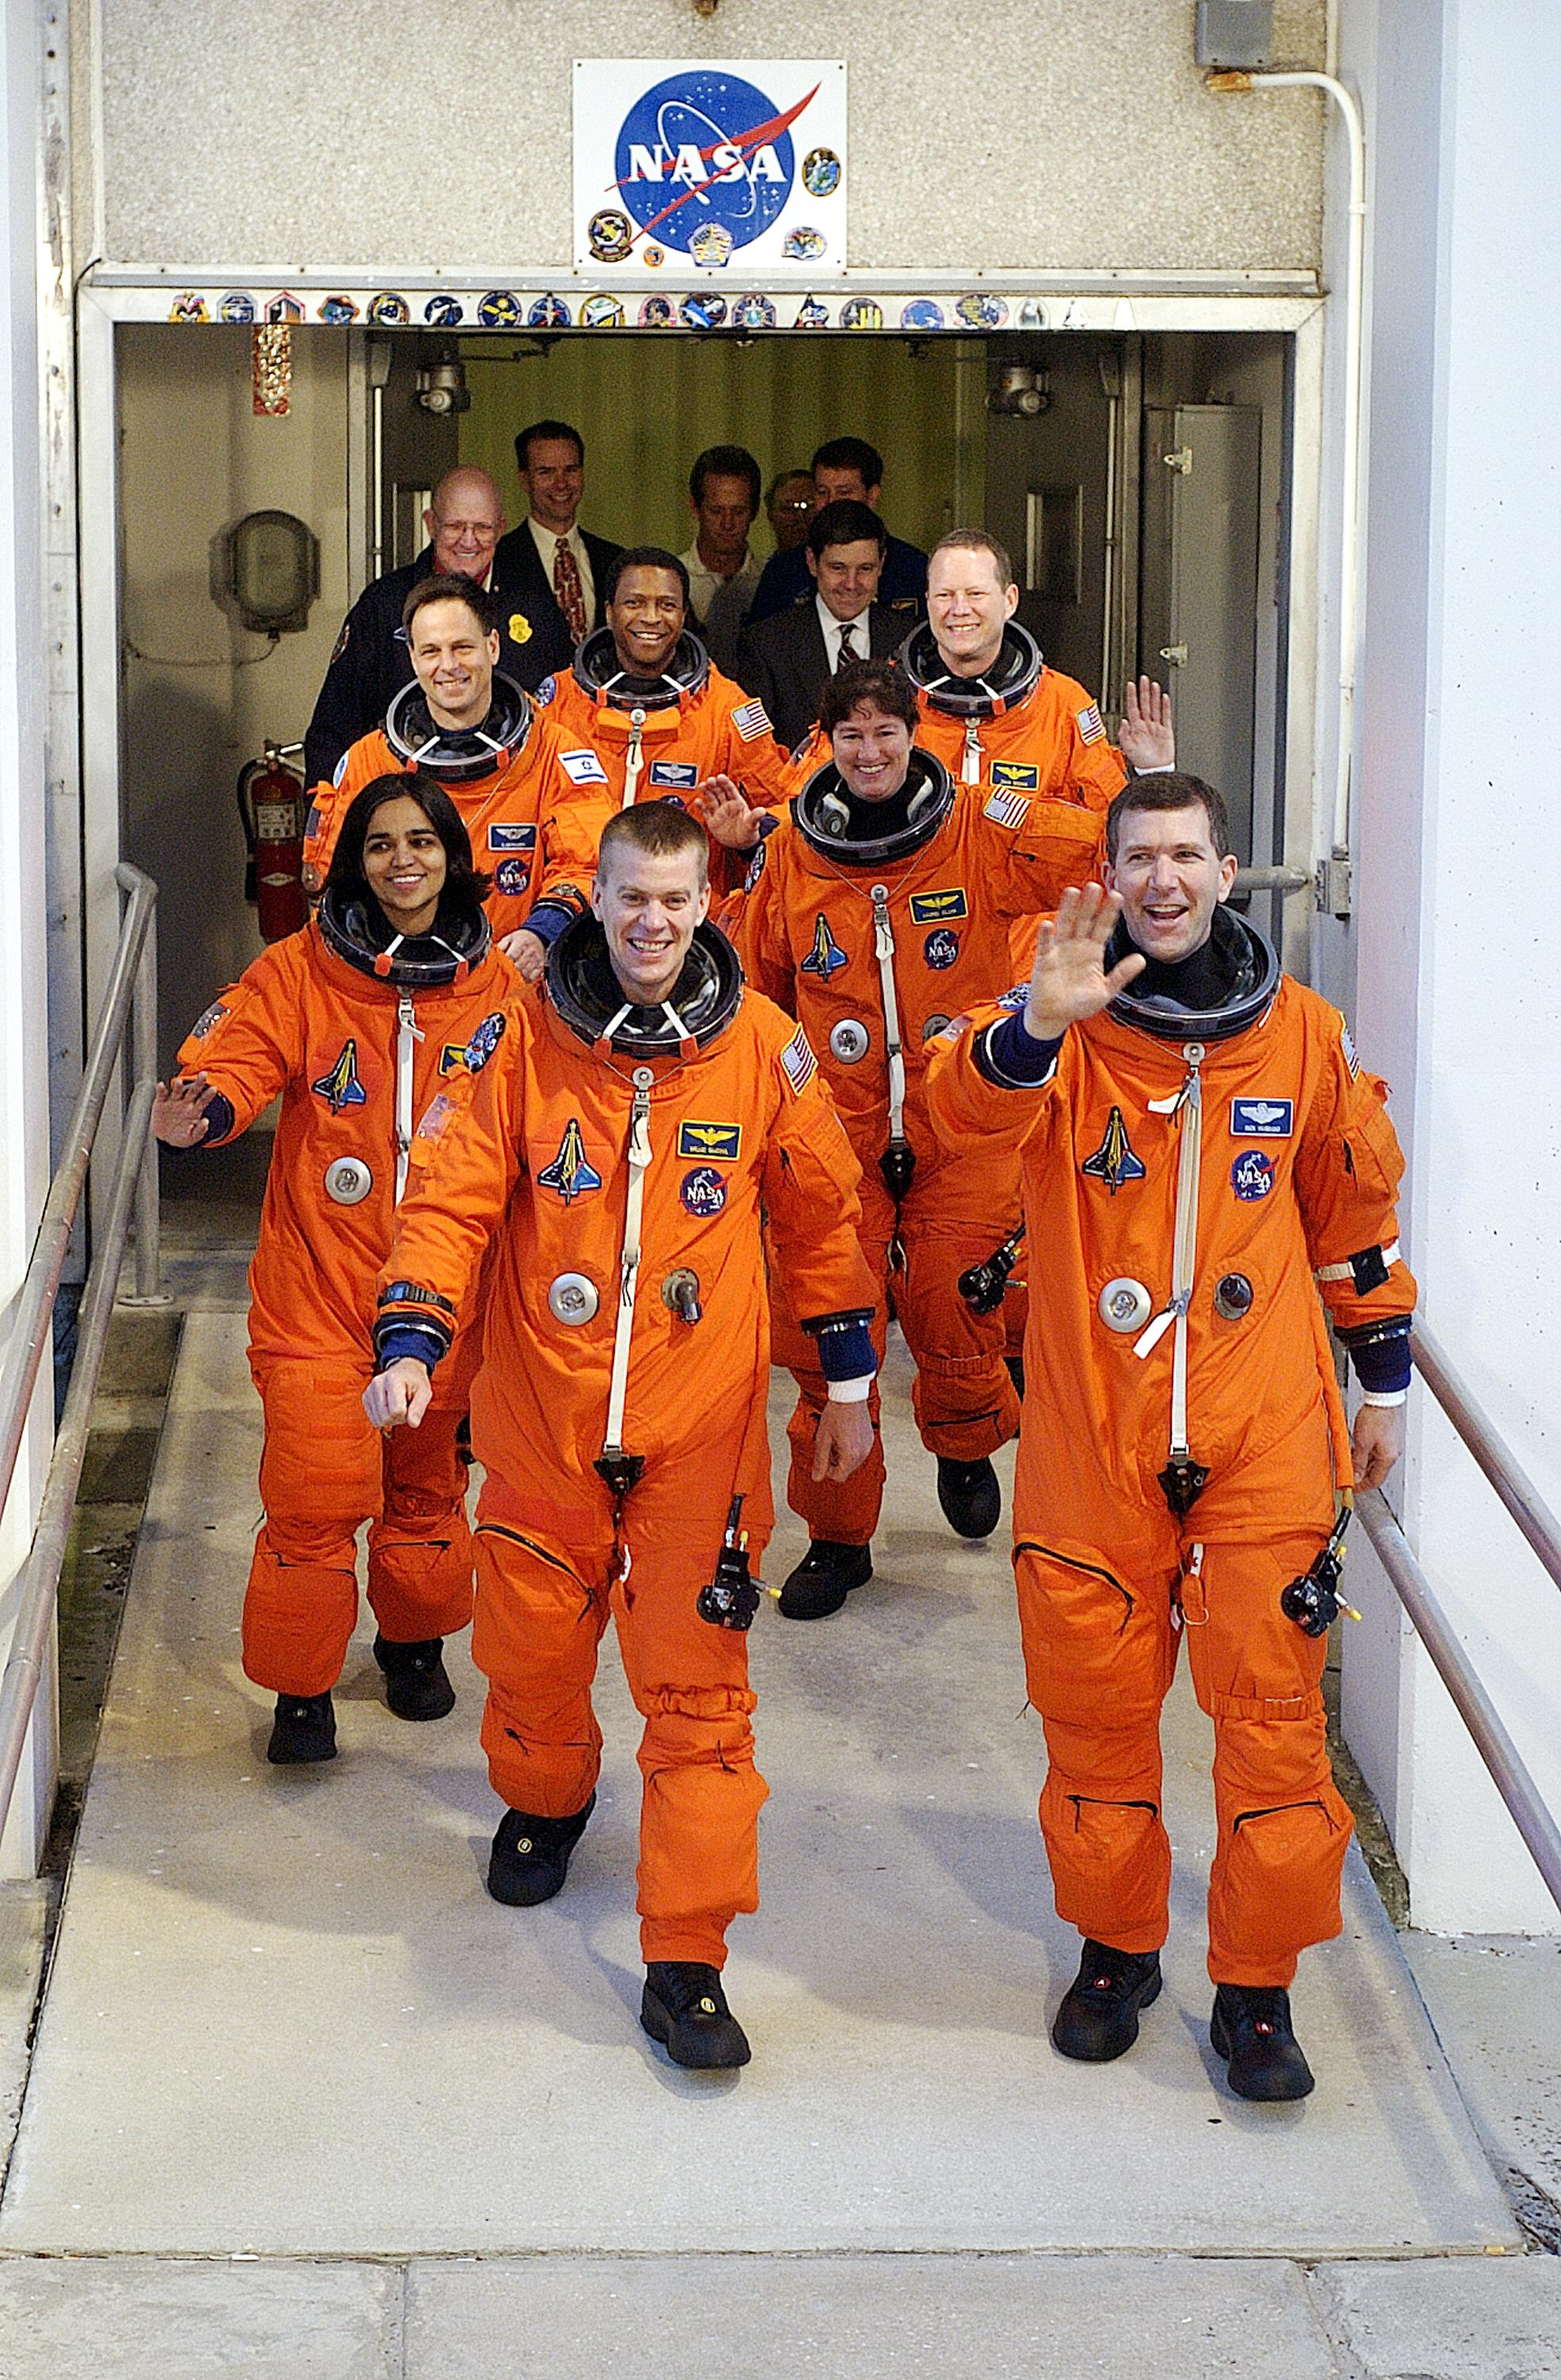 Shuttle Columbia's STS-107 Crew: Walkout